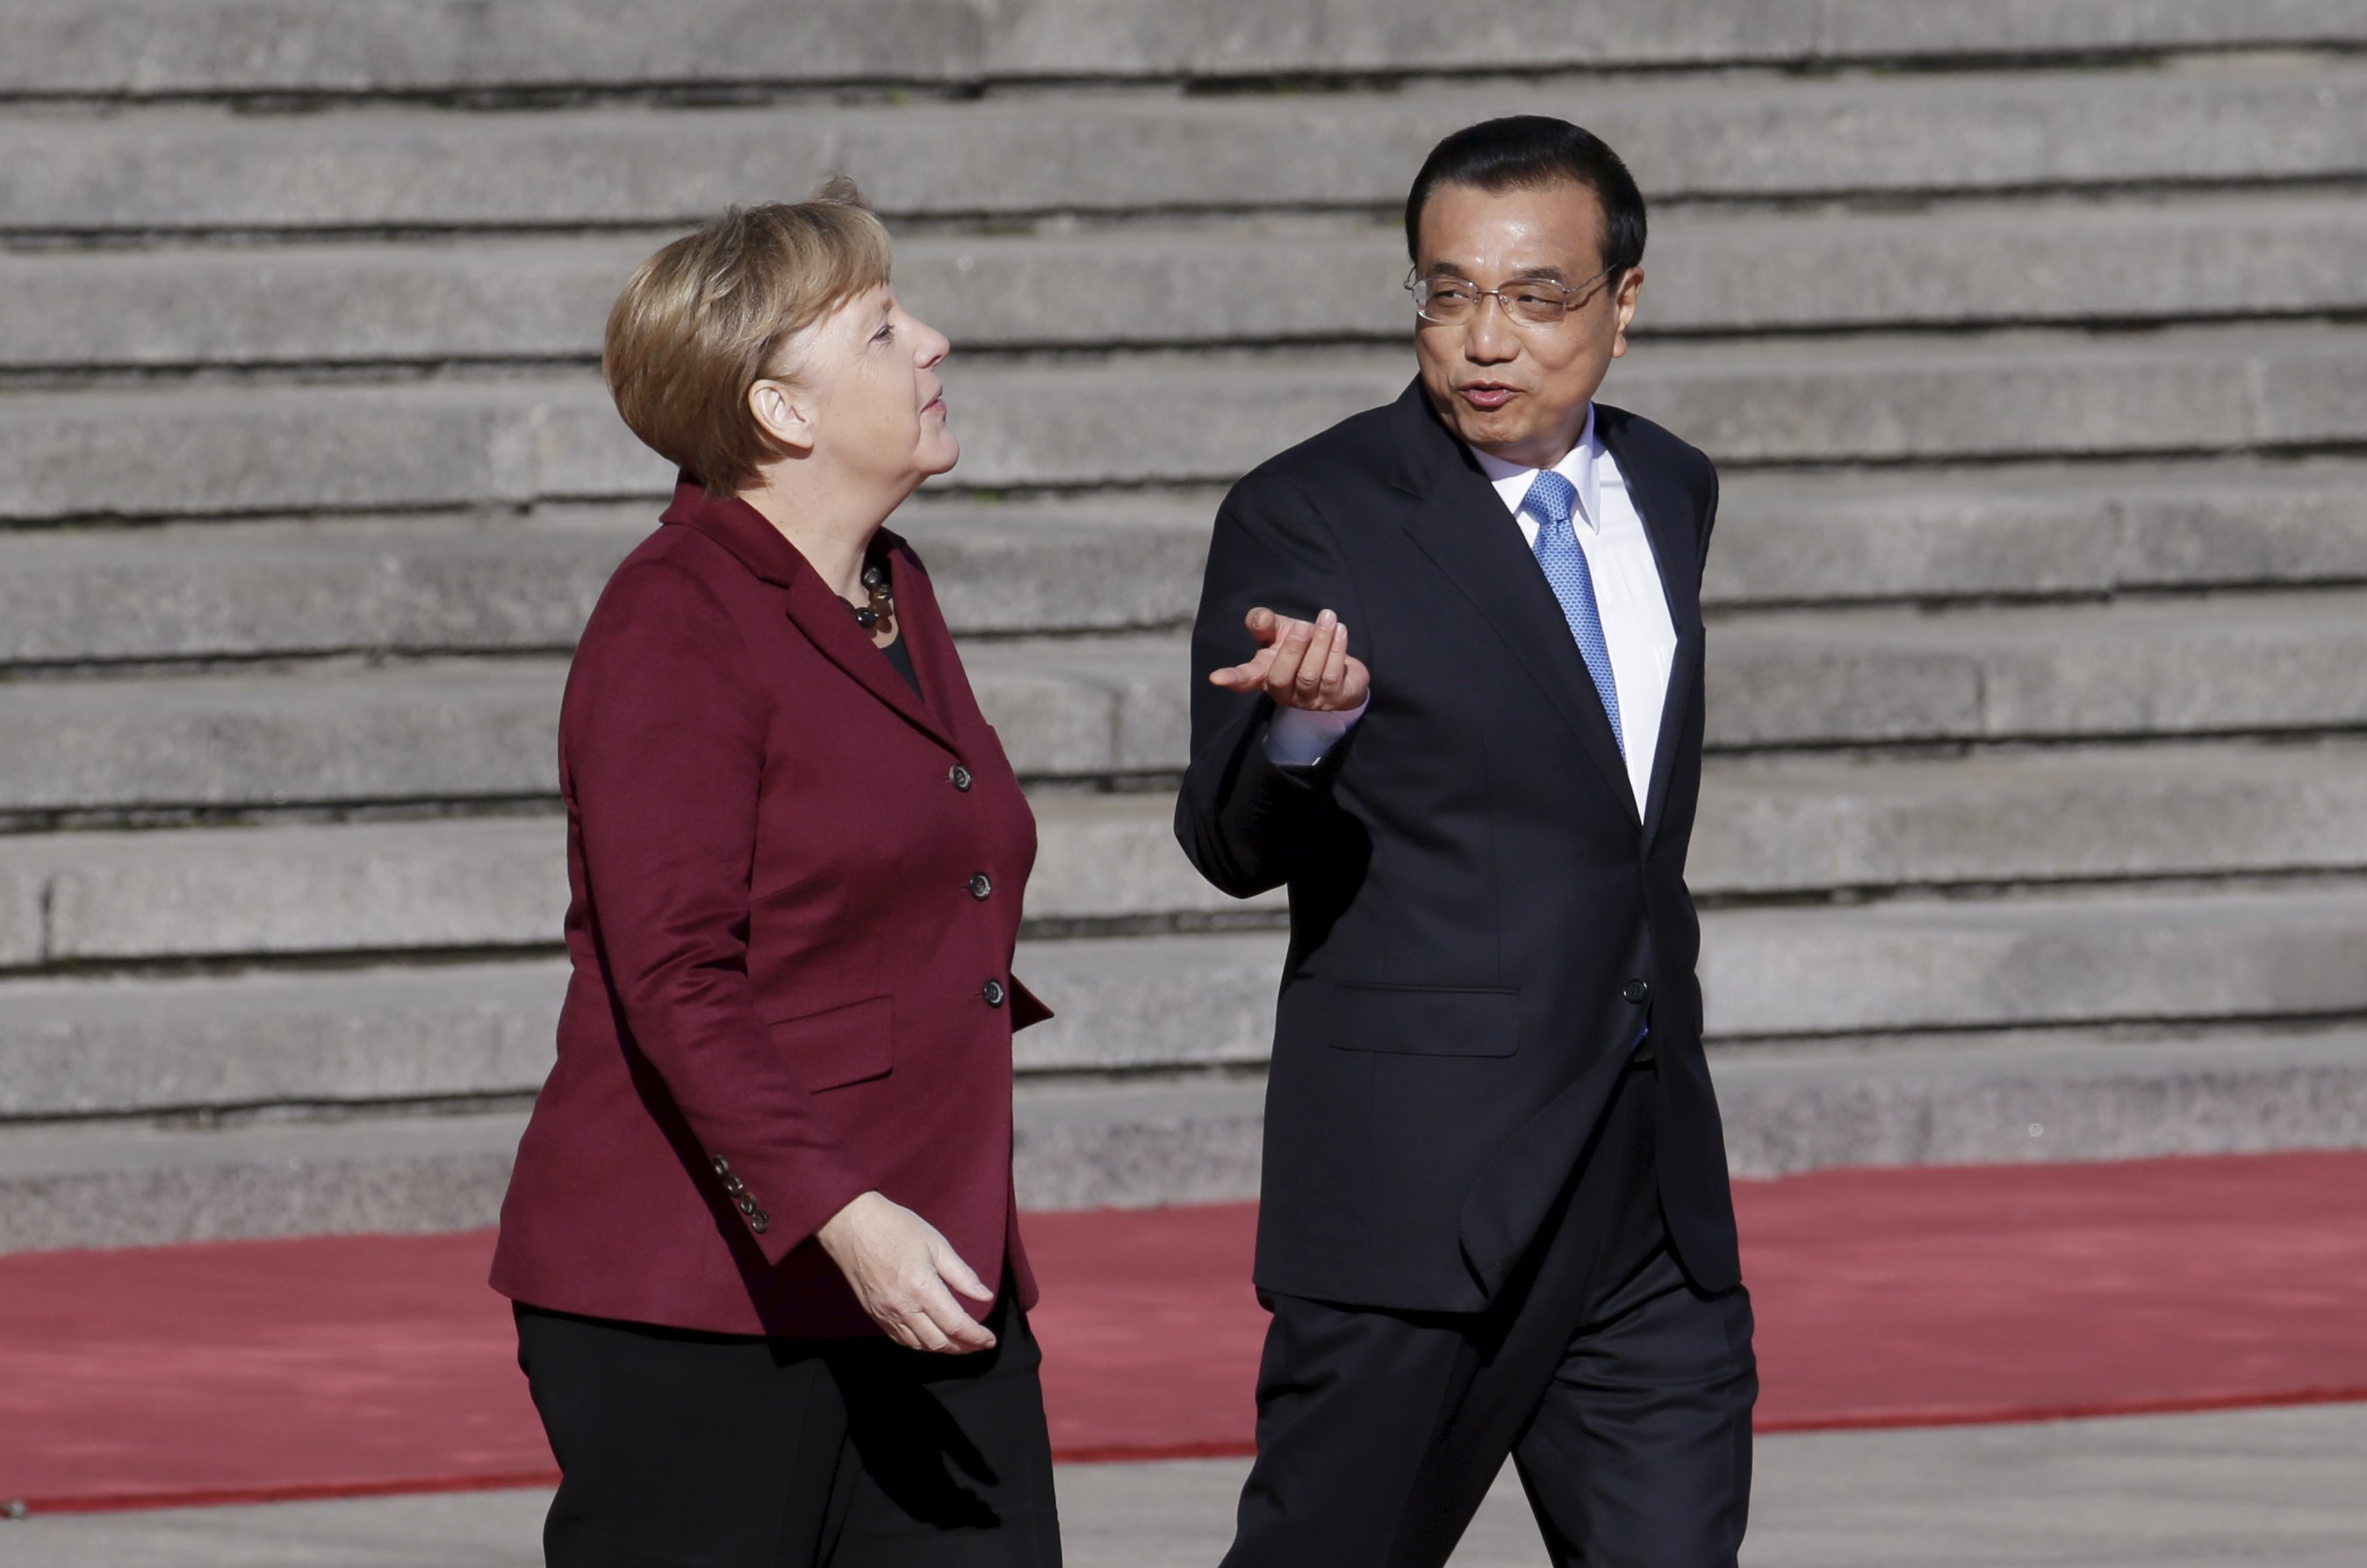 Germany's Chancellor Angela Merkel (left) chats with China's Premier Li Keqiang during a welcoming ceremony outside the Great Hall of the People in Beijing, China, October 29, 2015. Photo: Reuters